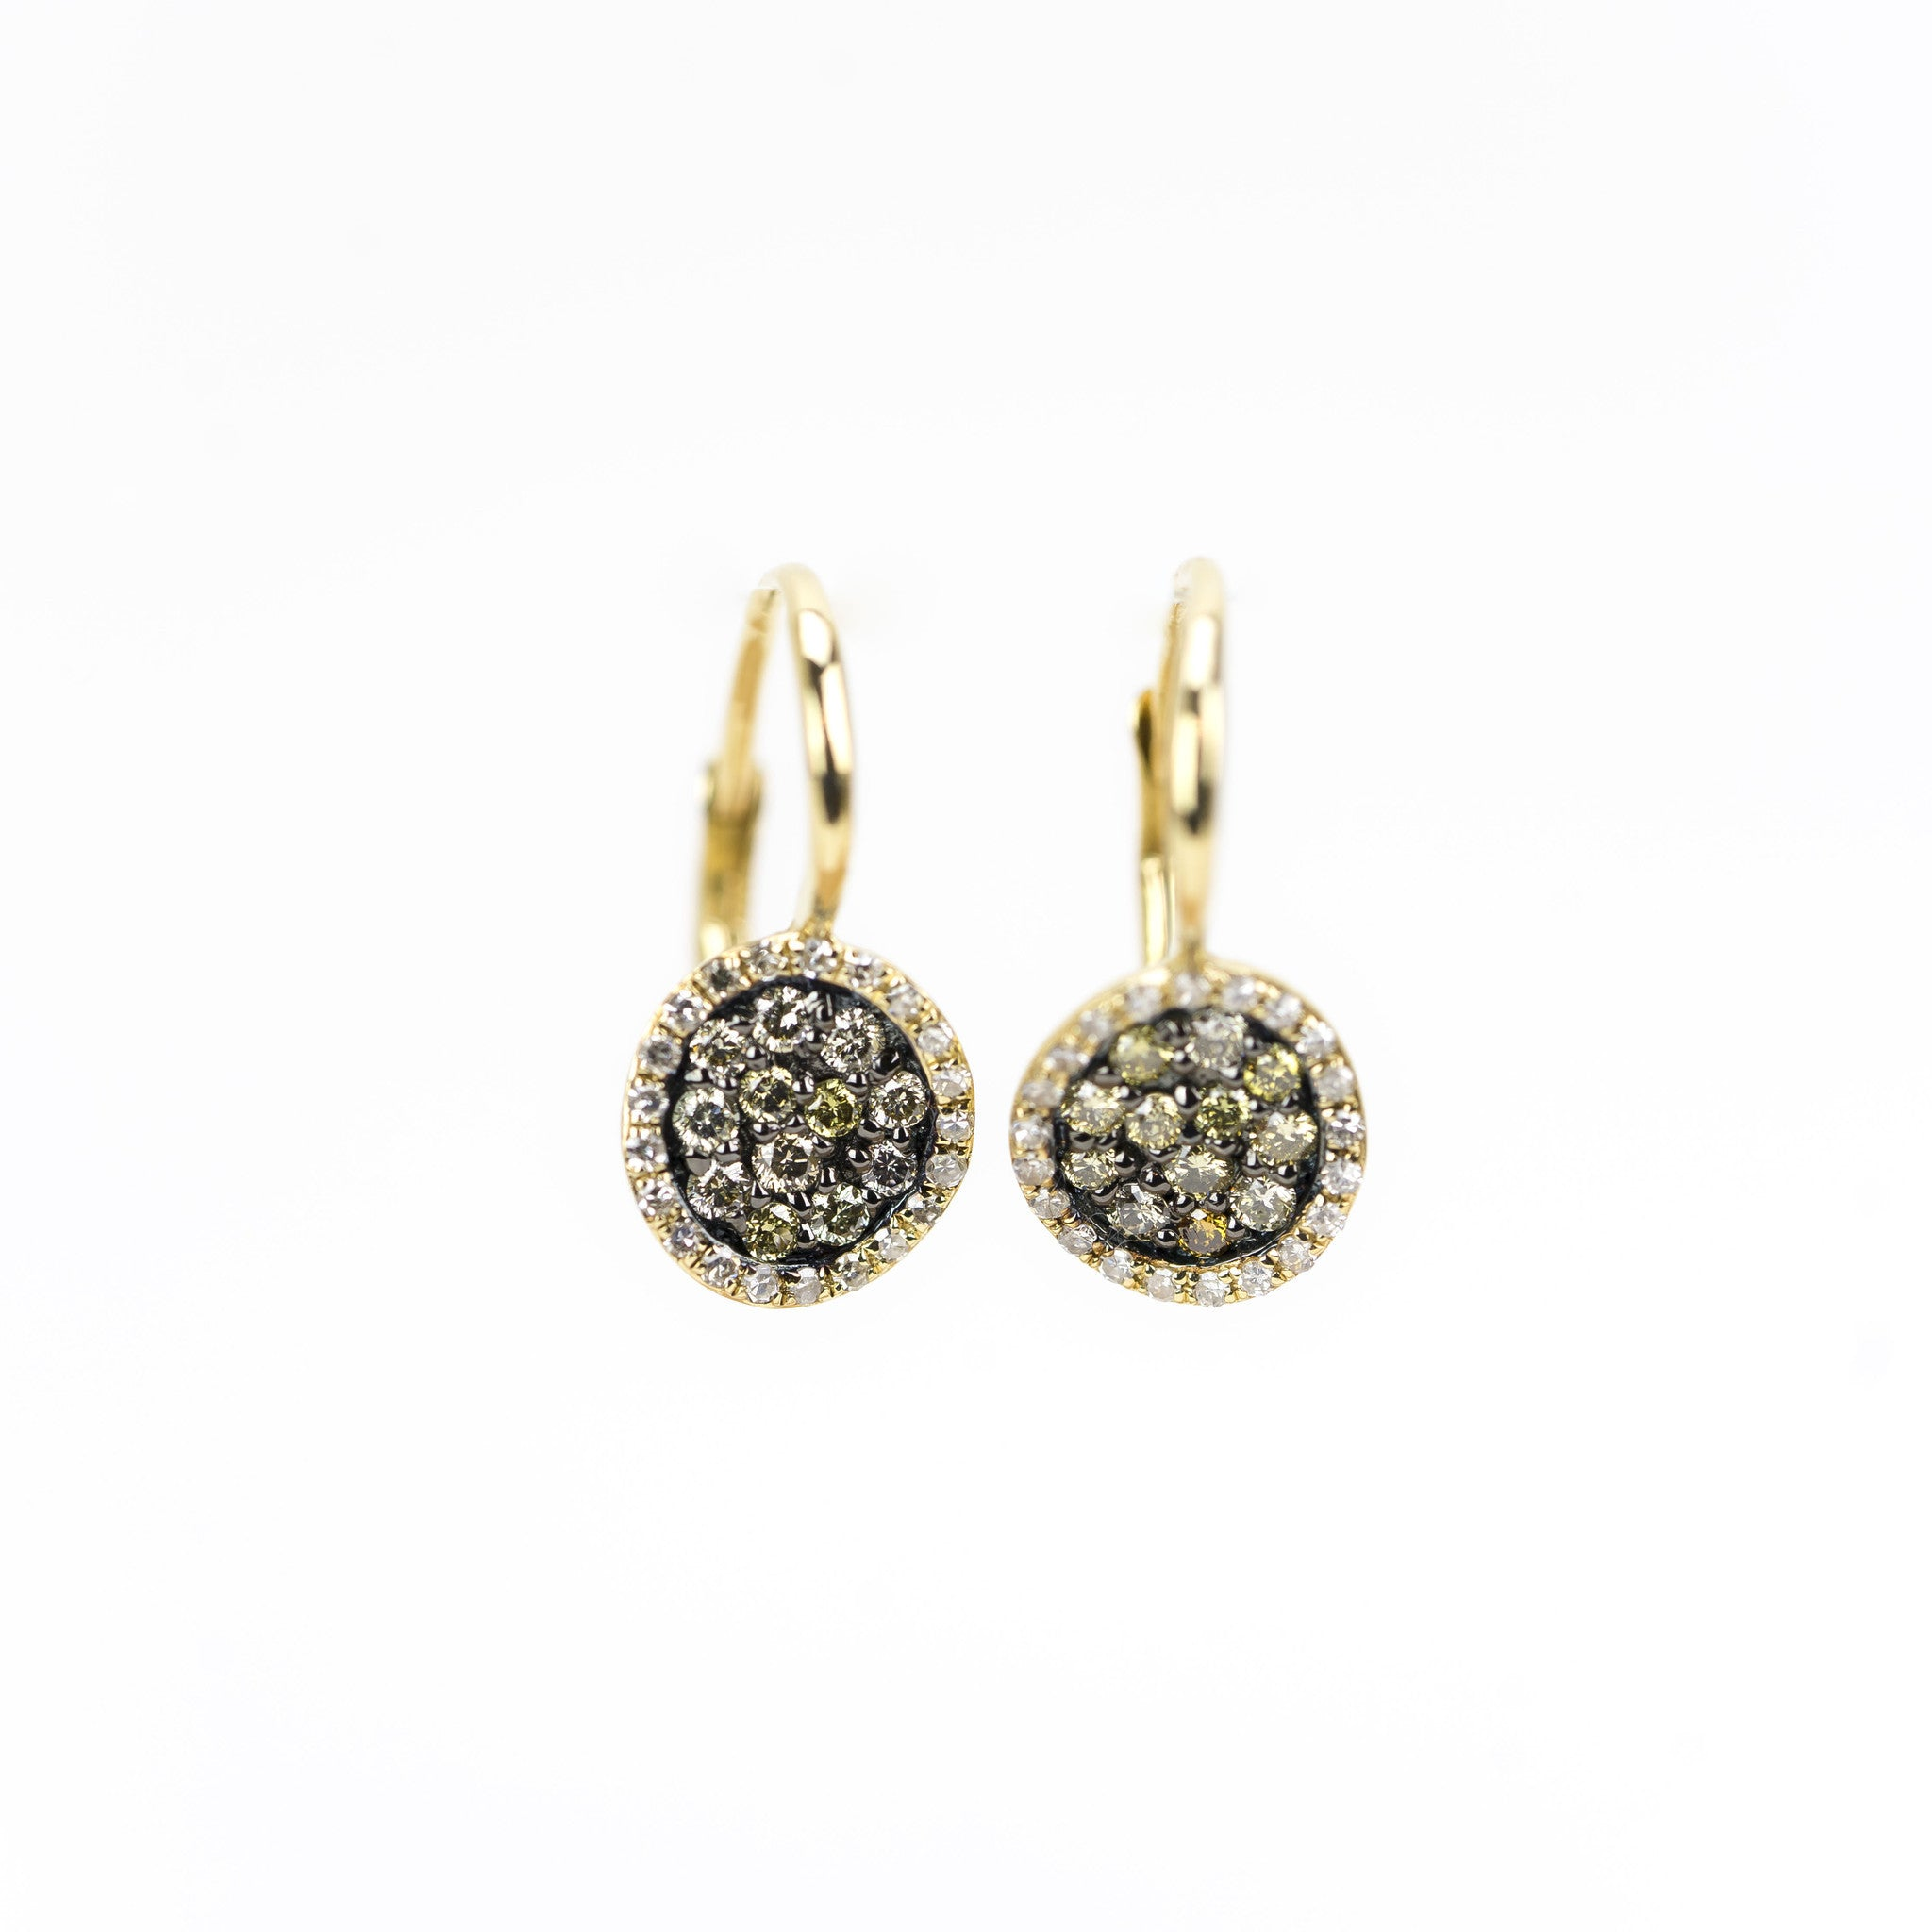 Champagne and White Diamond Meteorite Earrings by Atheria Jewelry